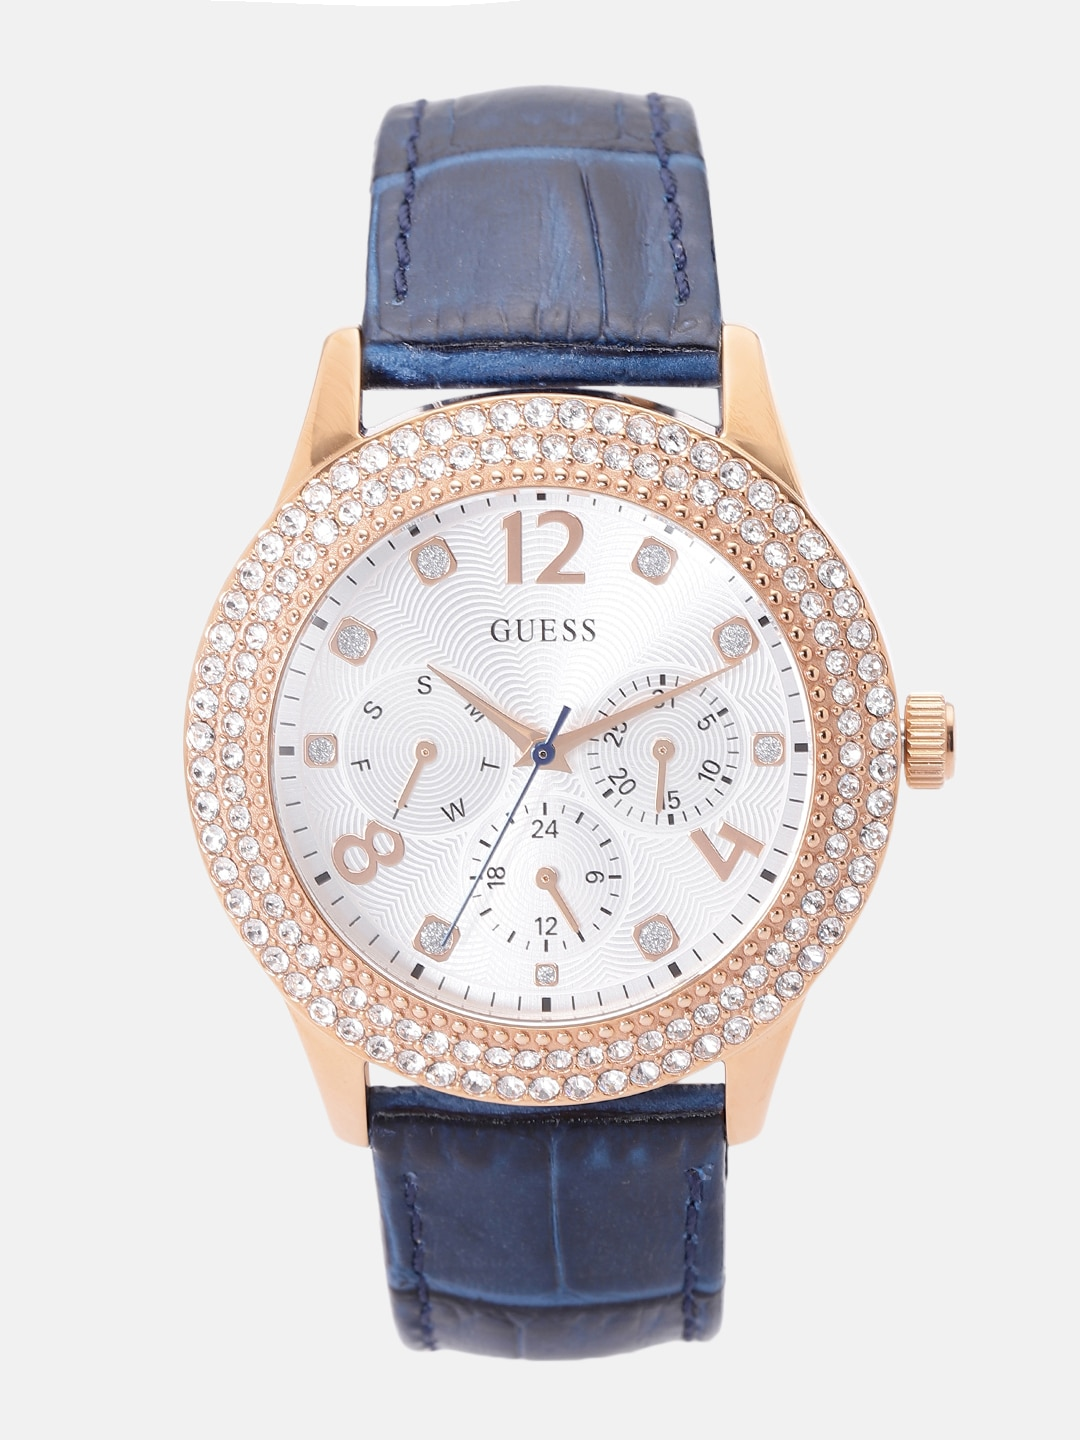 bd221a7d8c62d GUESS Watches - Buy GUESS Watches Online at Best Price